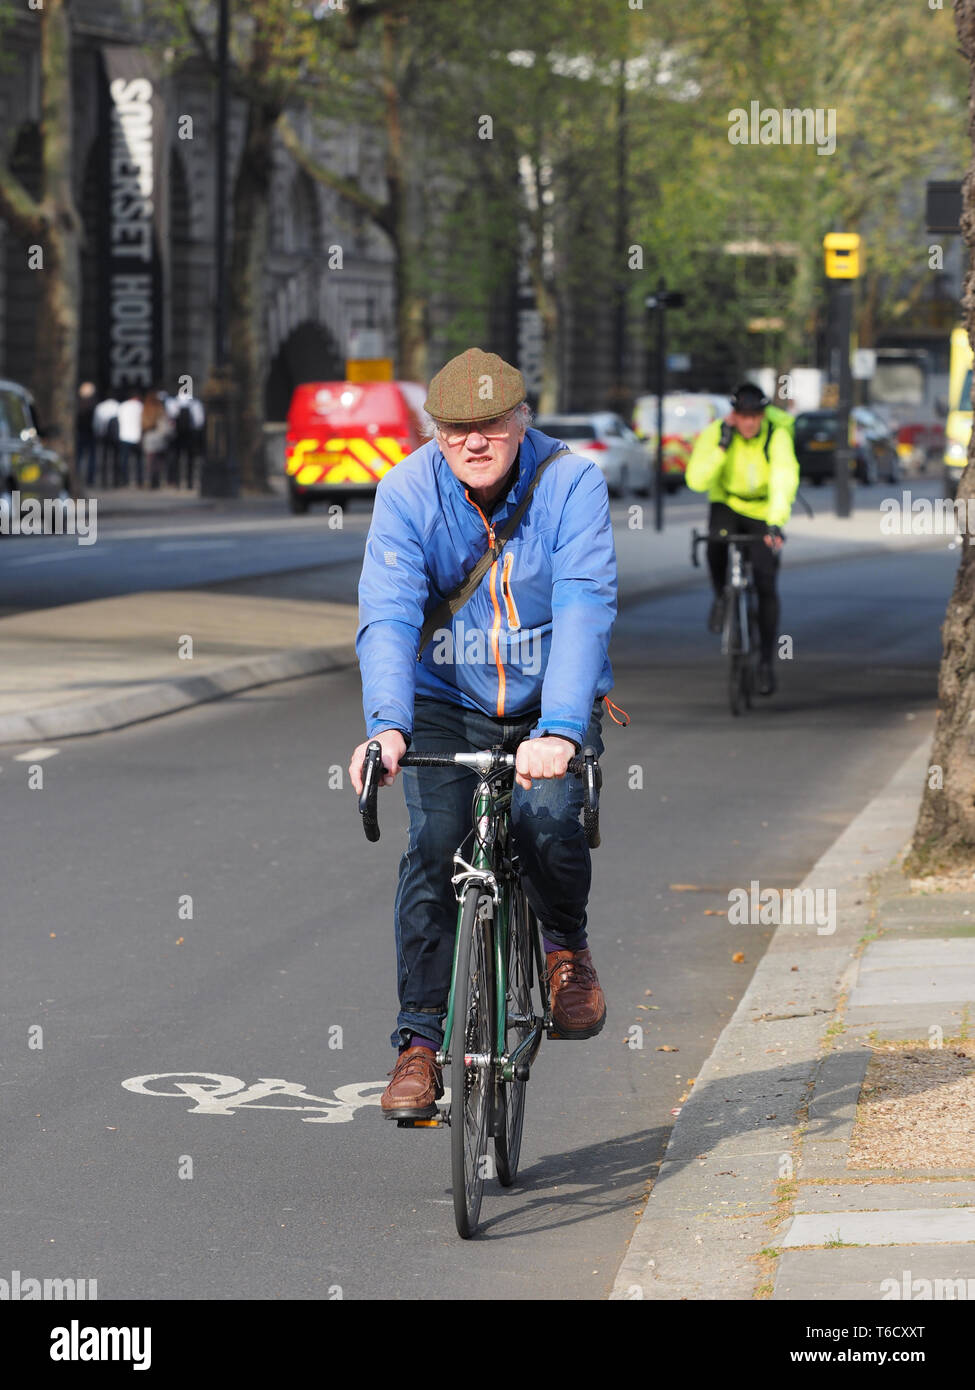 Angry snarling man Cycling in London, England, UK - Stock Image